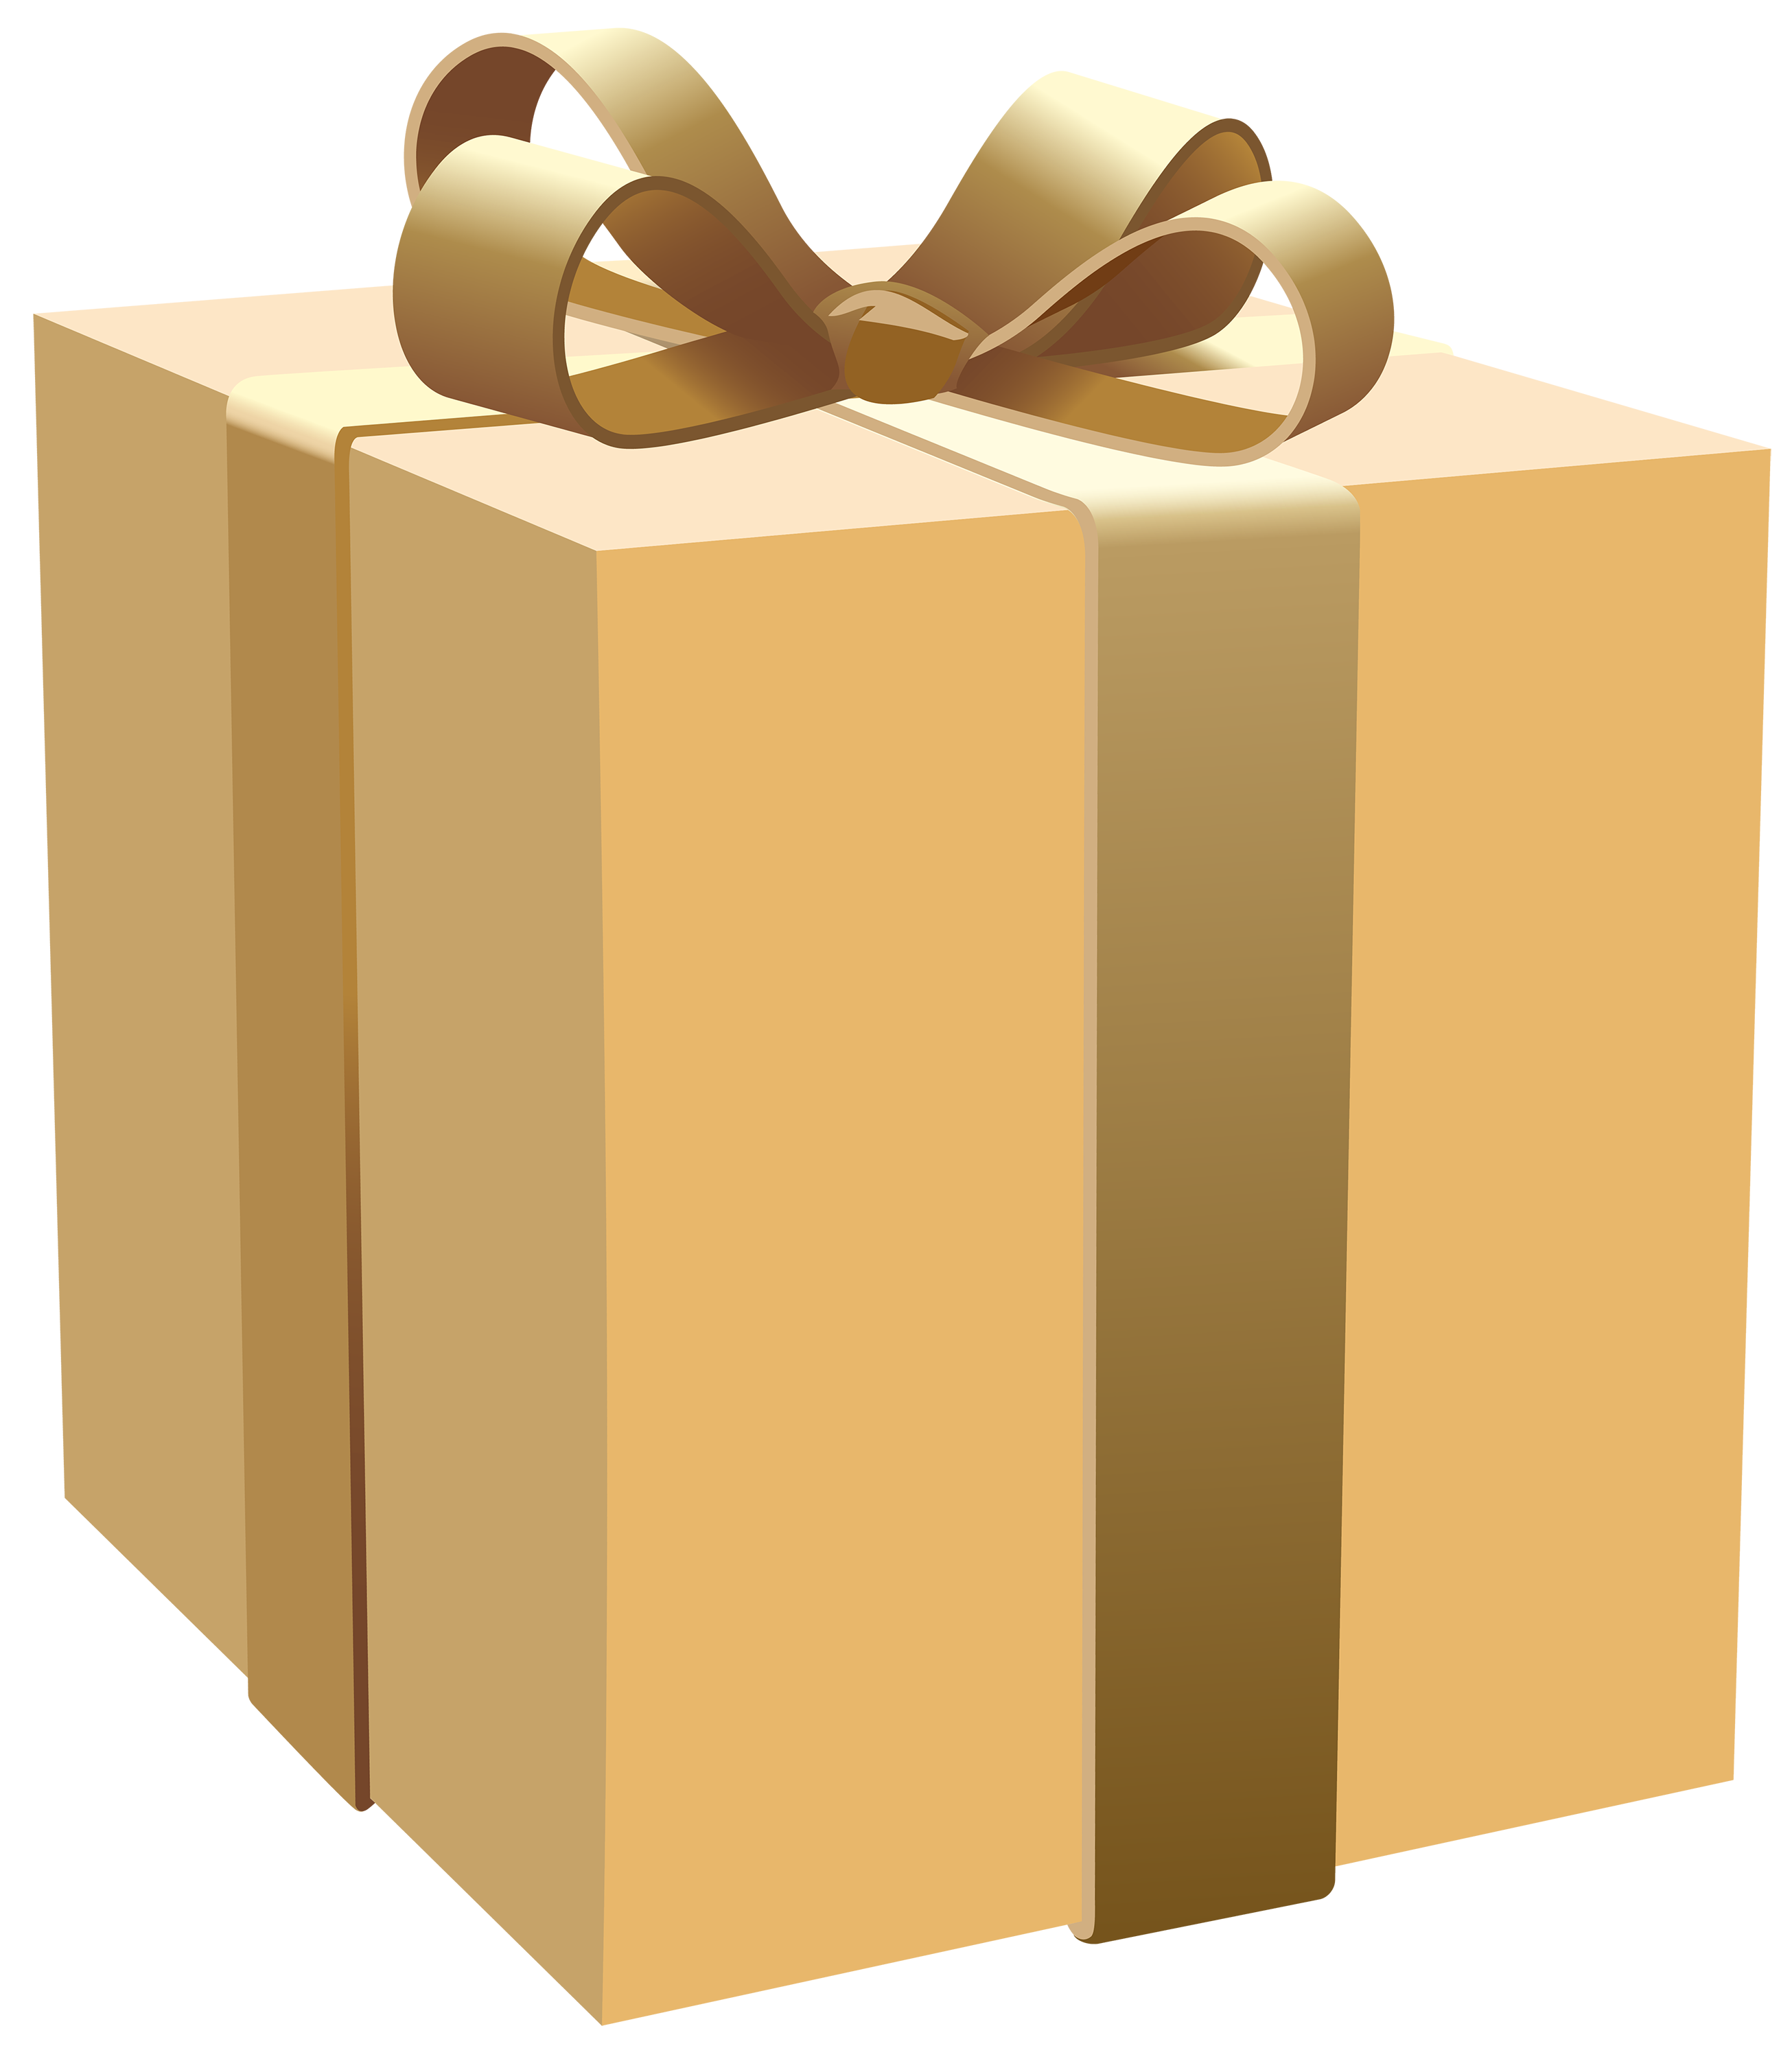 Gift Package Png - Cream Gift Box PNG Clipart - Best WEB Clipart